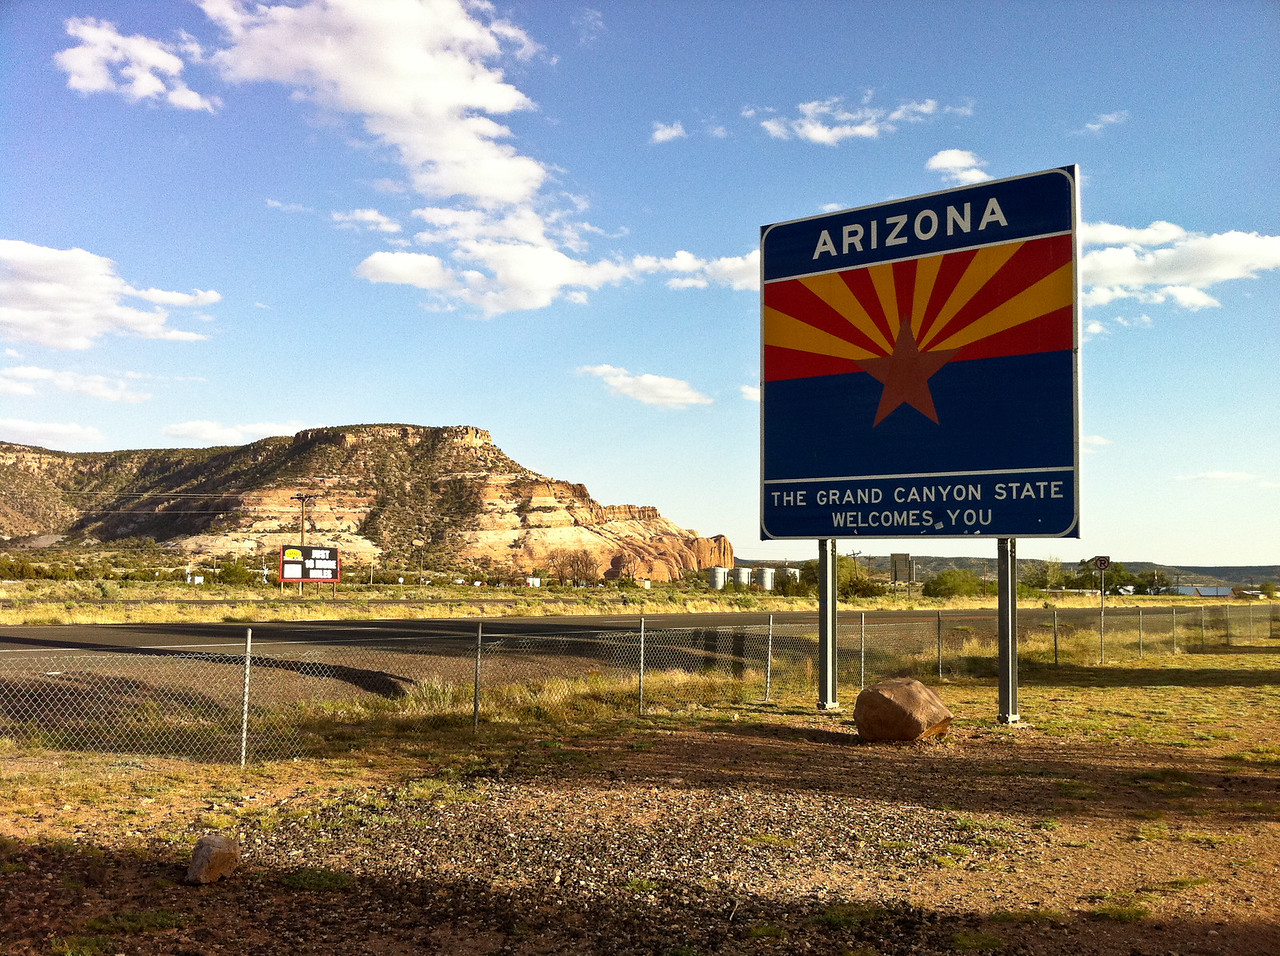 Arizona - The Grand Canyon State welcomes you